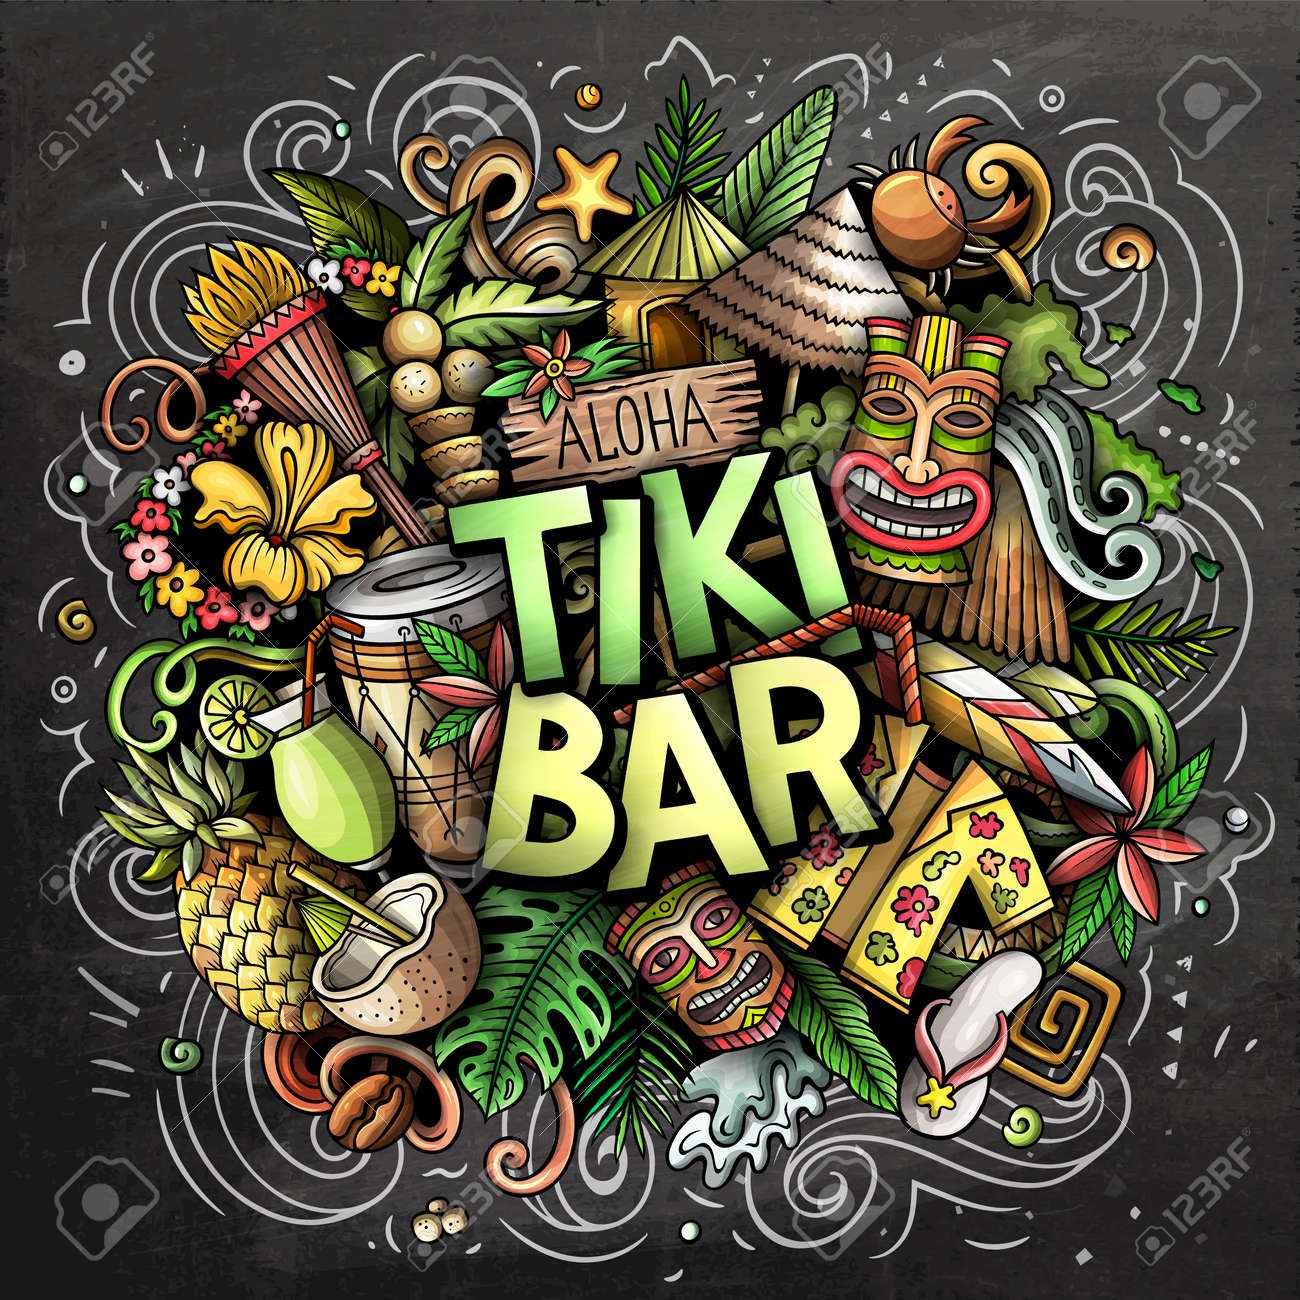 Tiki Bar hand drawn cartoon doodle illustration. Funny Hawaiian design. Creative art vector background. Handwritten text with elements and objects. Chalkboard composition - 171462969